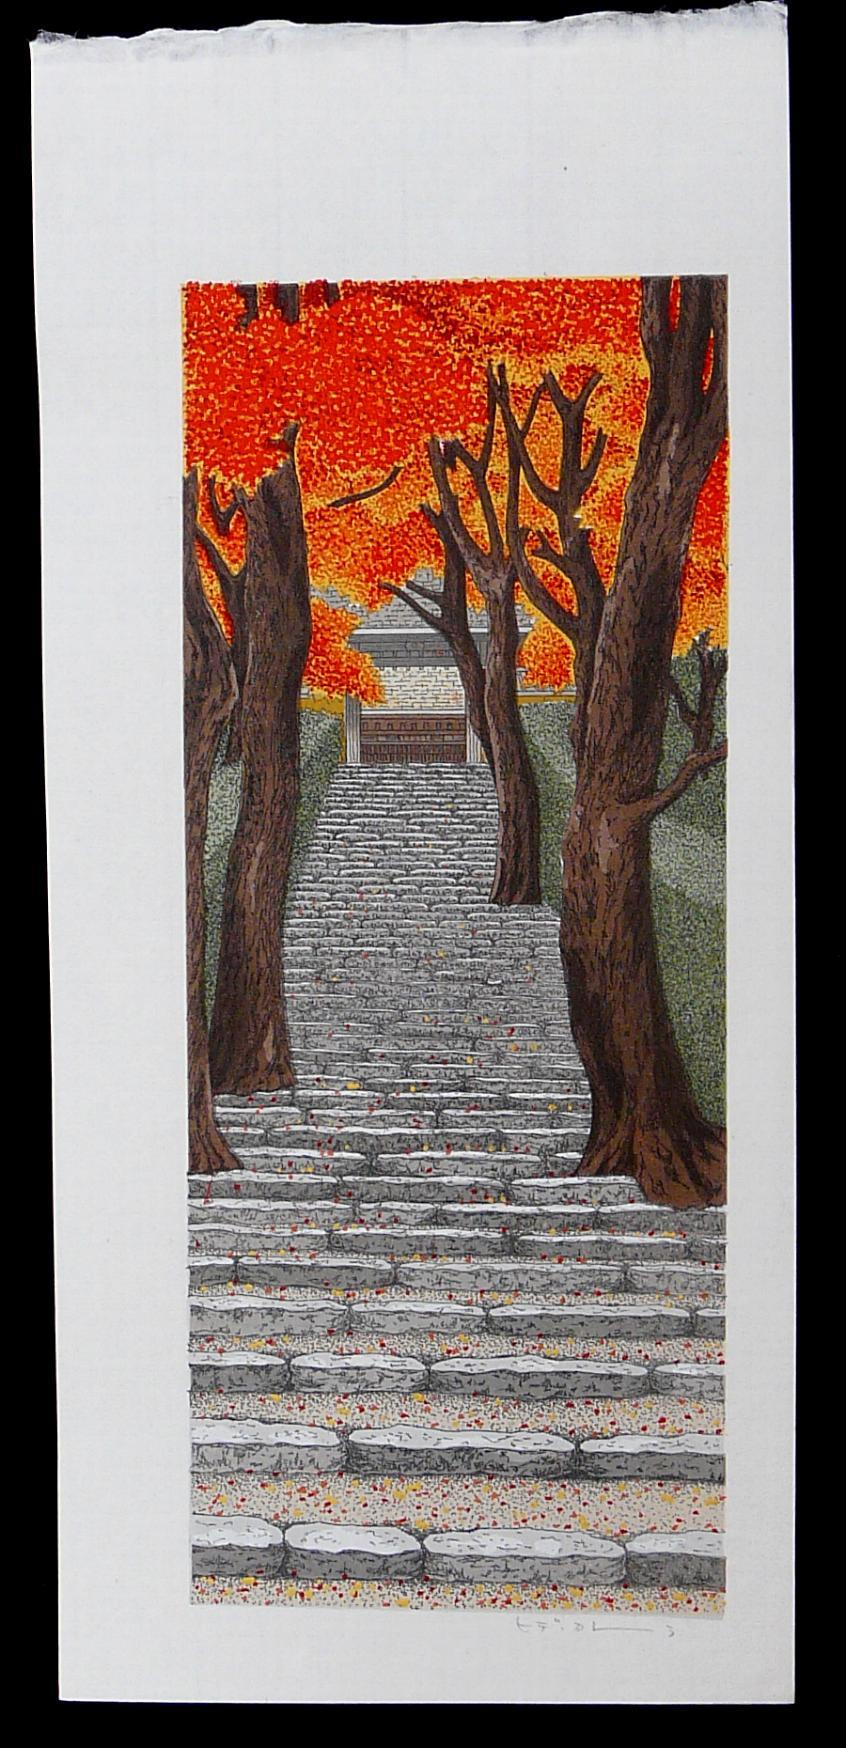 TERUHIDE KATO: #P2636 STAIR WAY TO KIYOMIZU IN AUTUMN